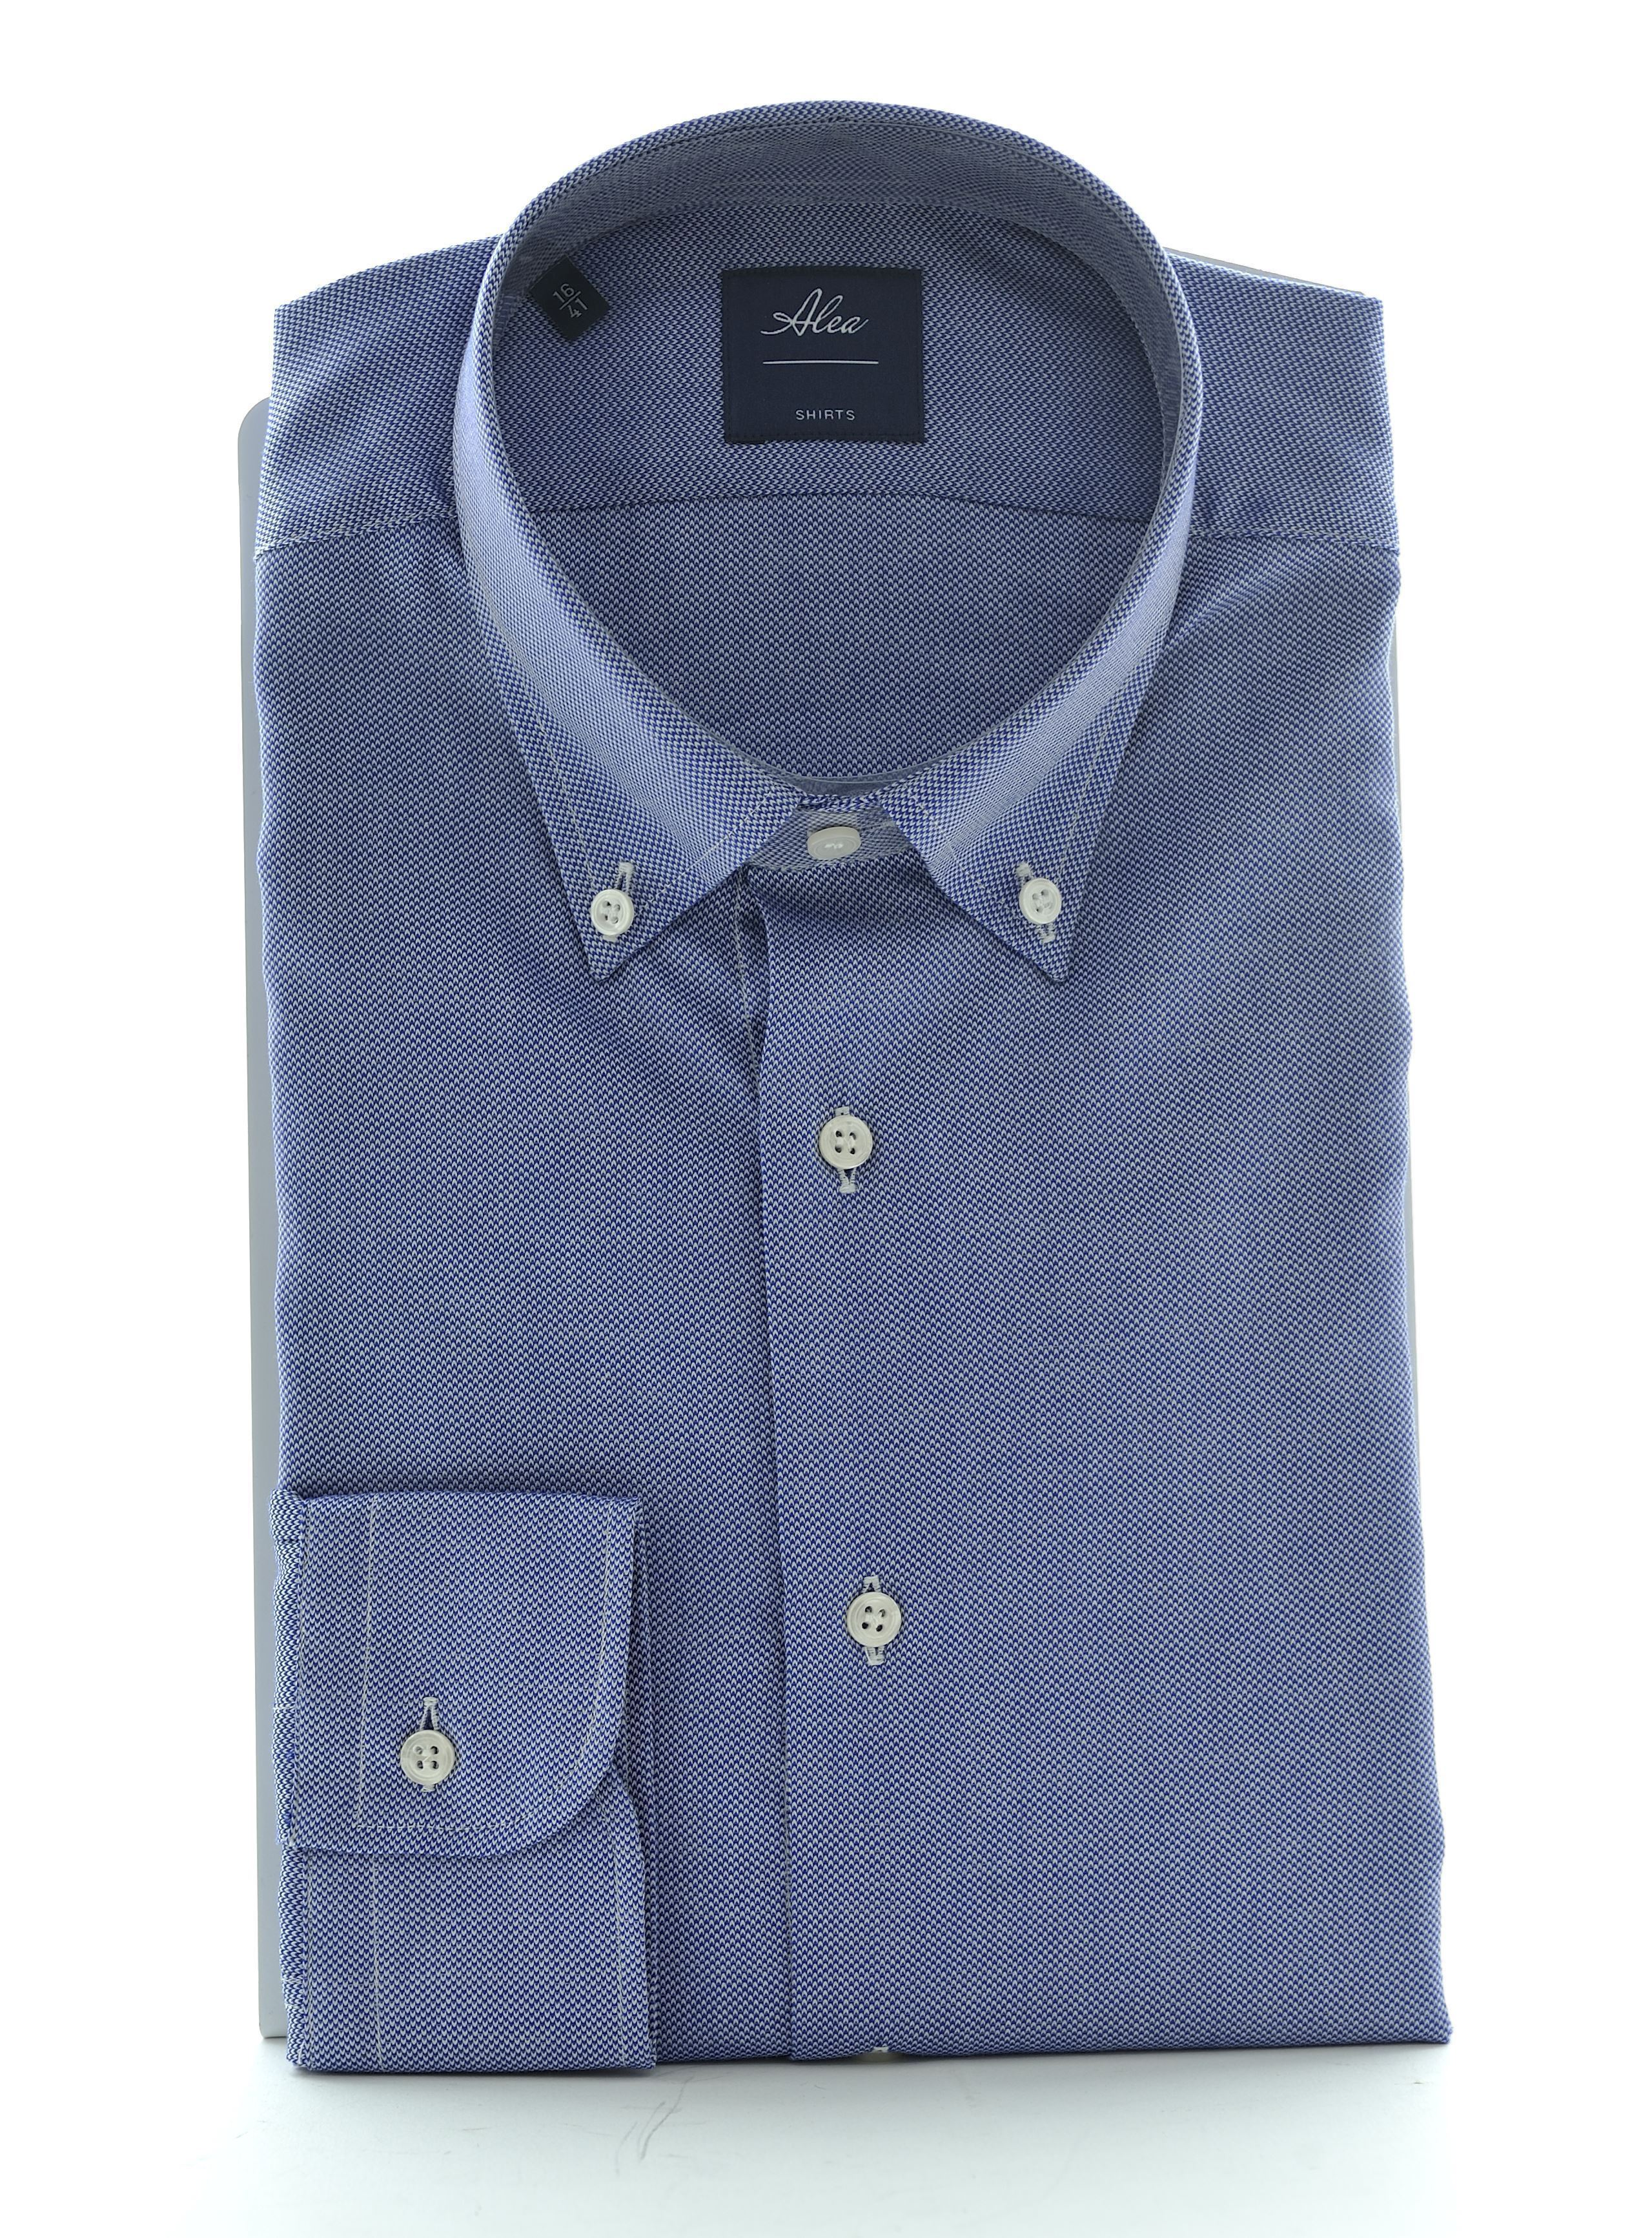 Picture of Long-sleeved shirt with Oxford weave